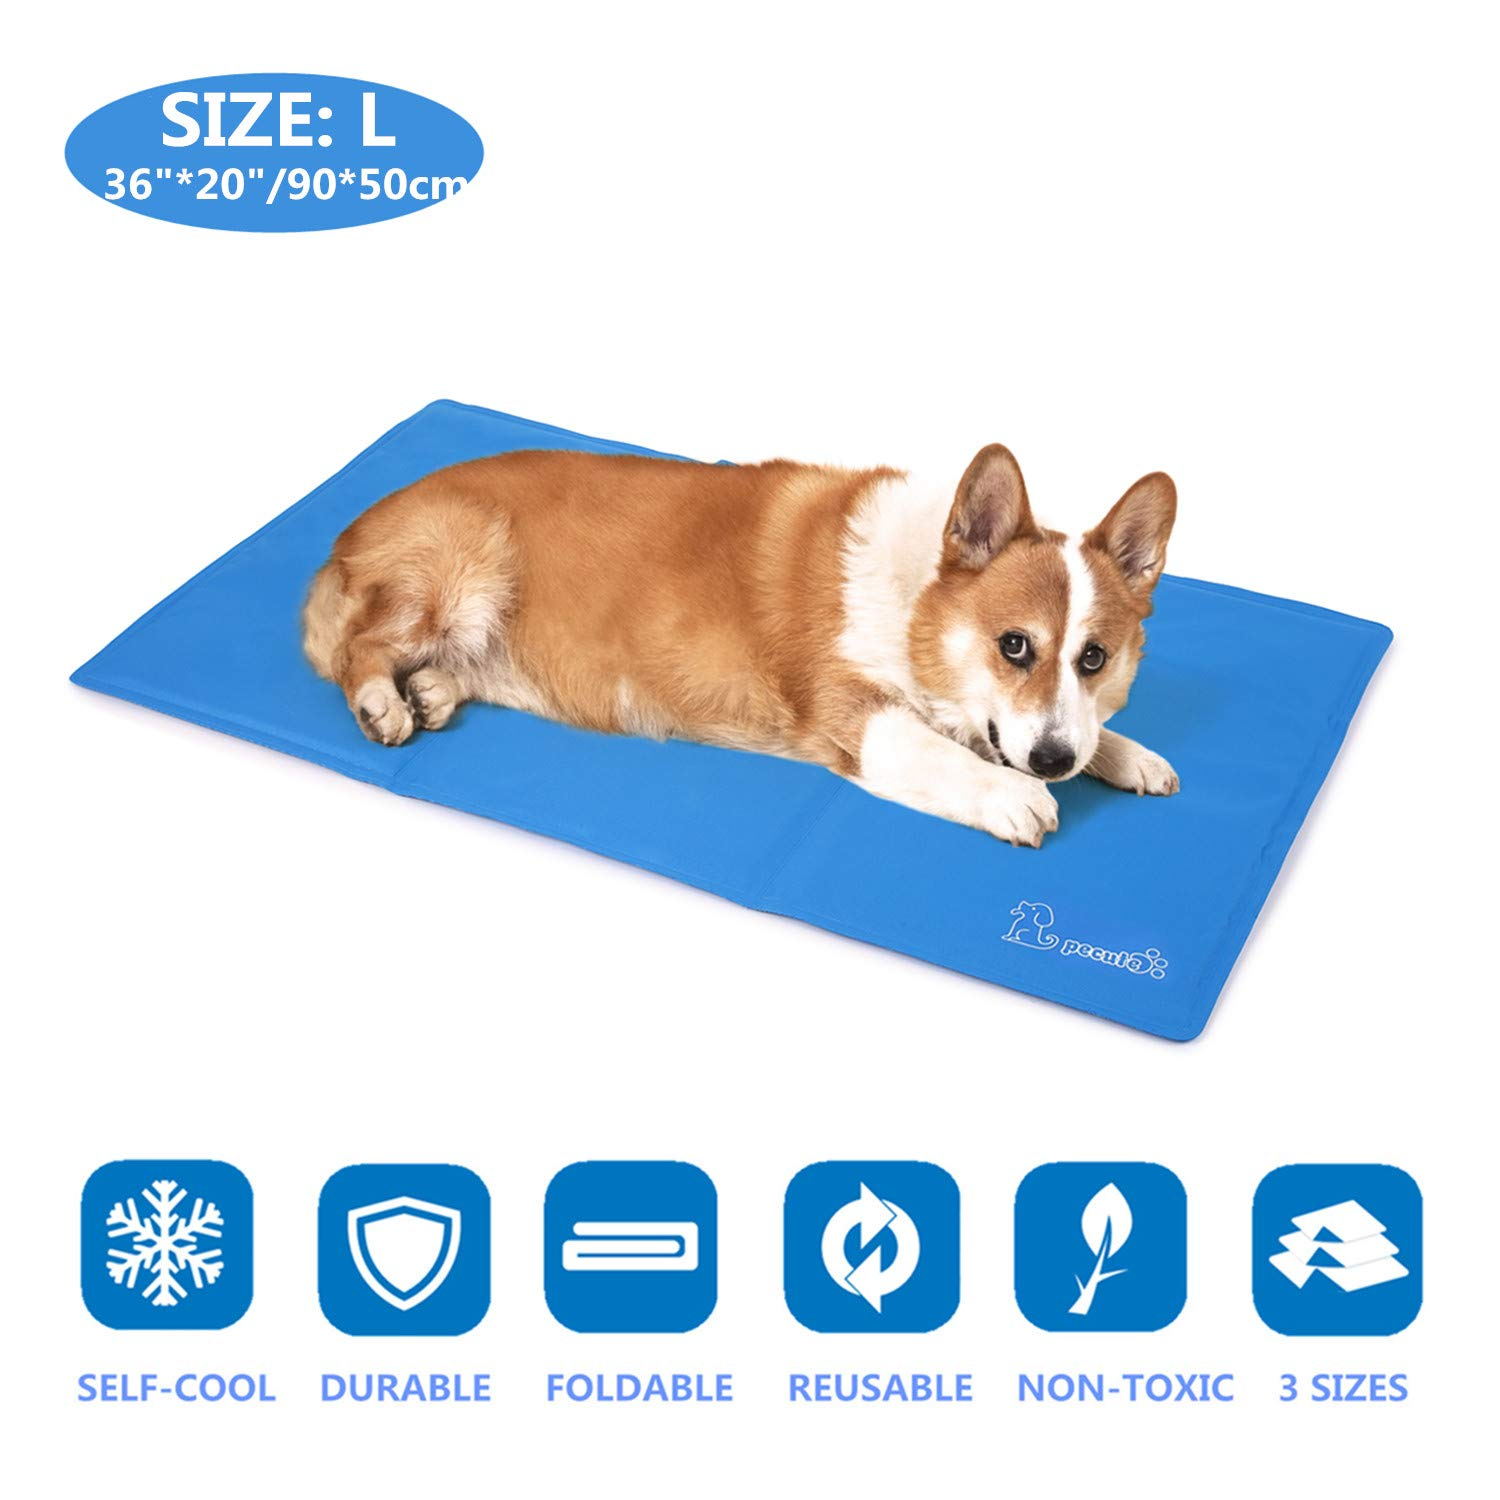 Pecute Dog Cooling Mat Large 90x50cm, Durable Pet Cool Mat Non-Toxic Gel Self Cooling Pad, Great for Dogs Cats in Hot Summer